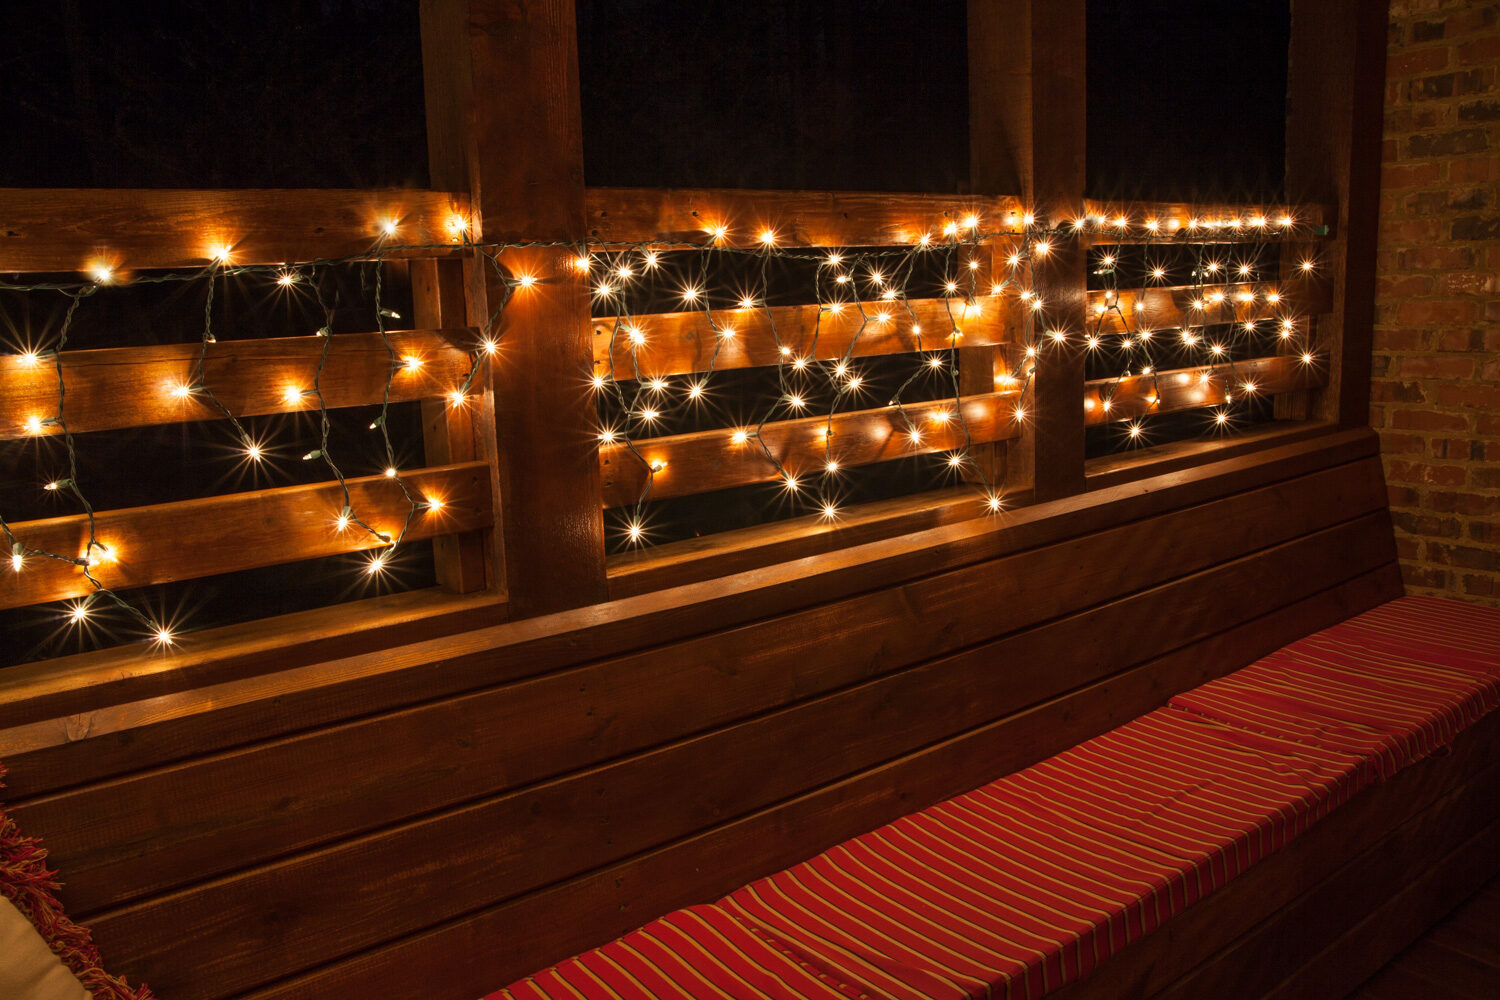 outside deck lighting. create beautiful outdoor lighting by hanging white lights from decks and patios outside deck x